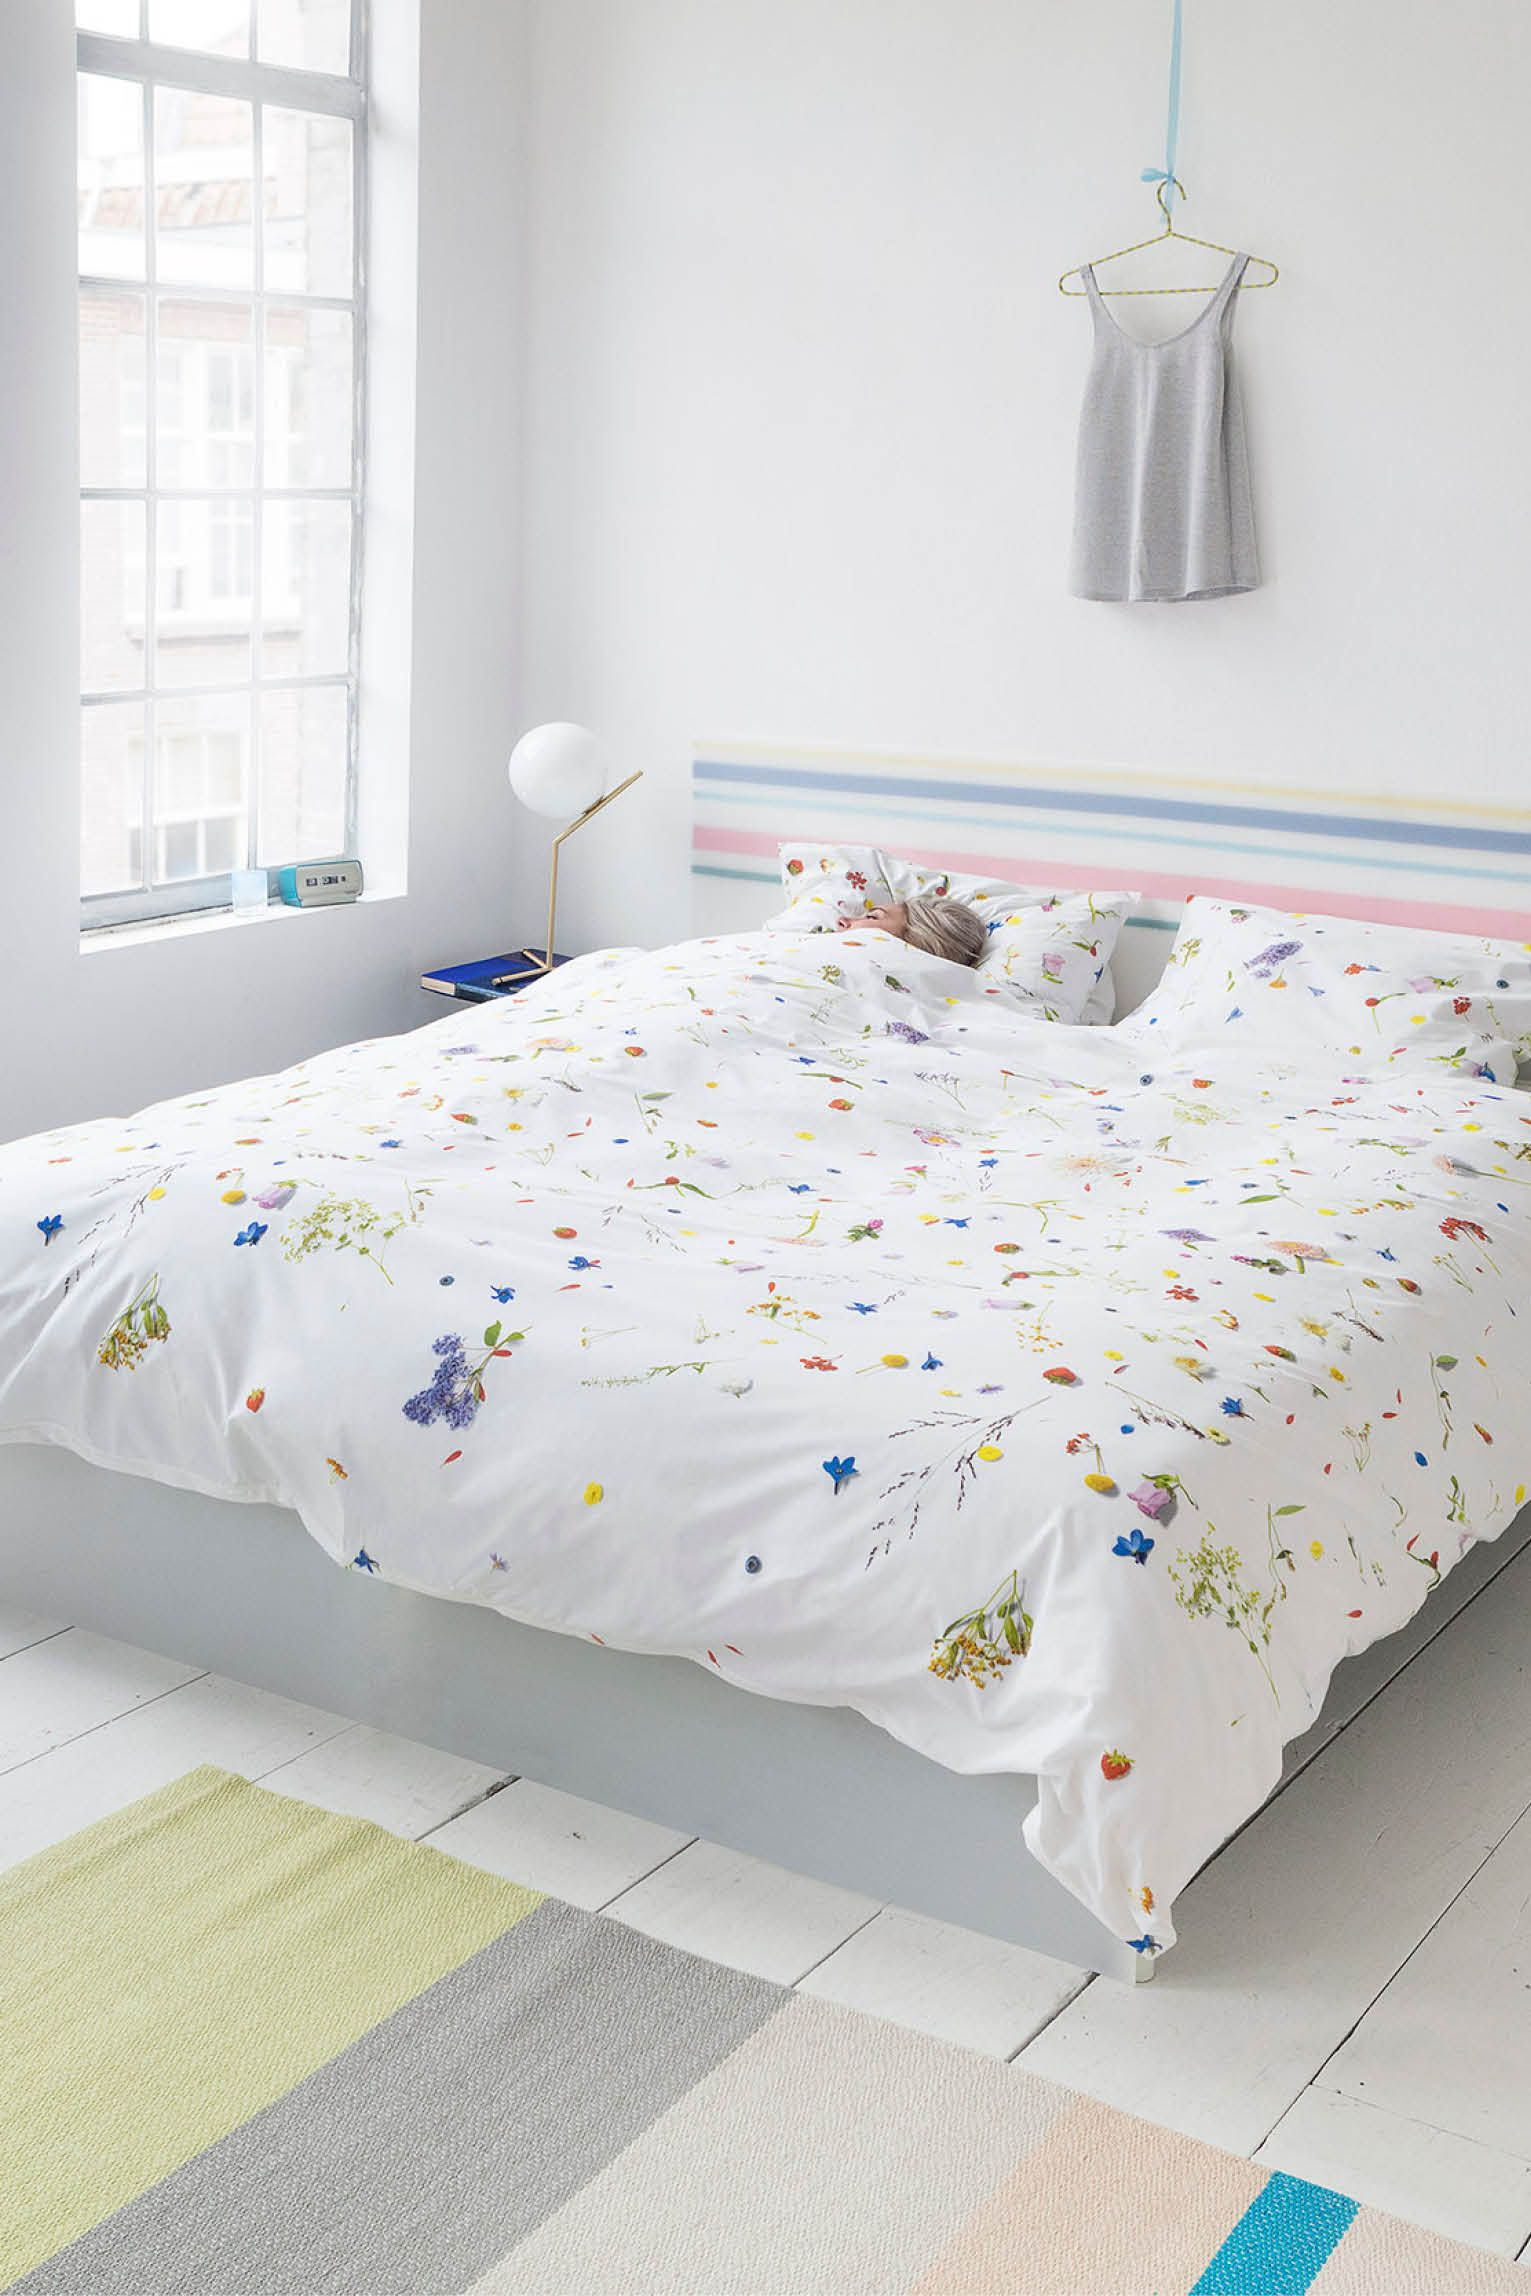 52bdac0a3c3fda SNURK Flower Fields Duvet Cover - € 99,95 Duvet covers with flower print  are countless. But yet there has never been one this fresh and this real  looking.